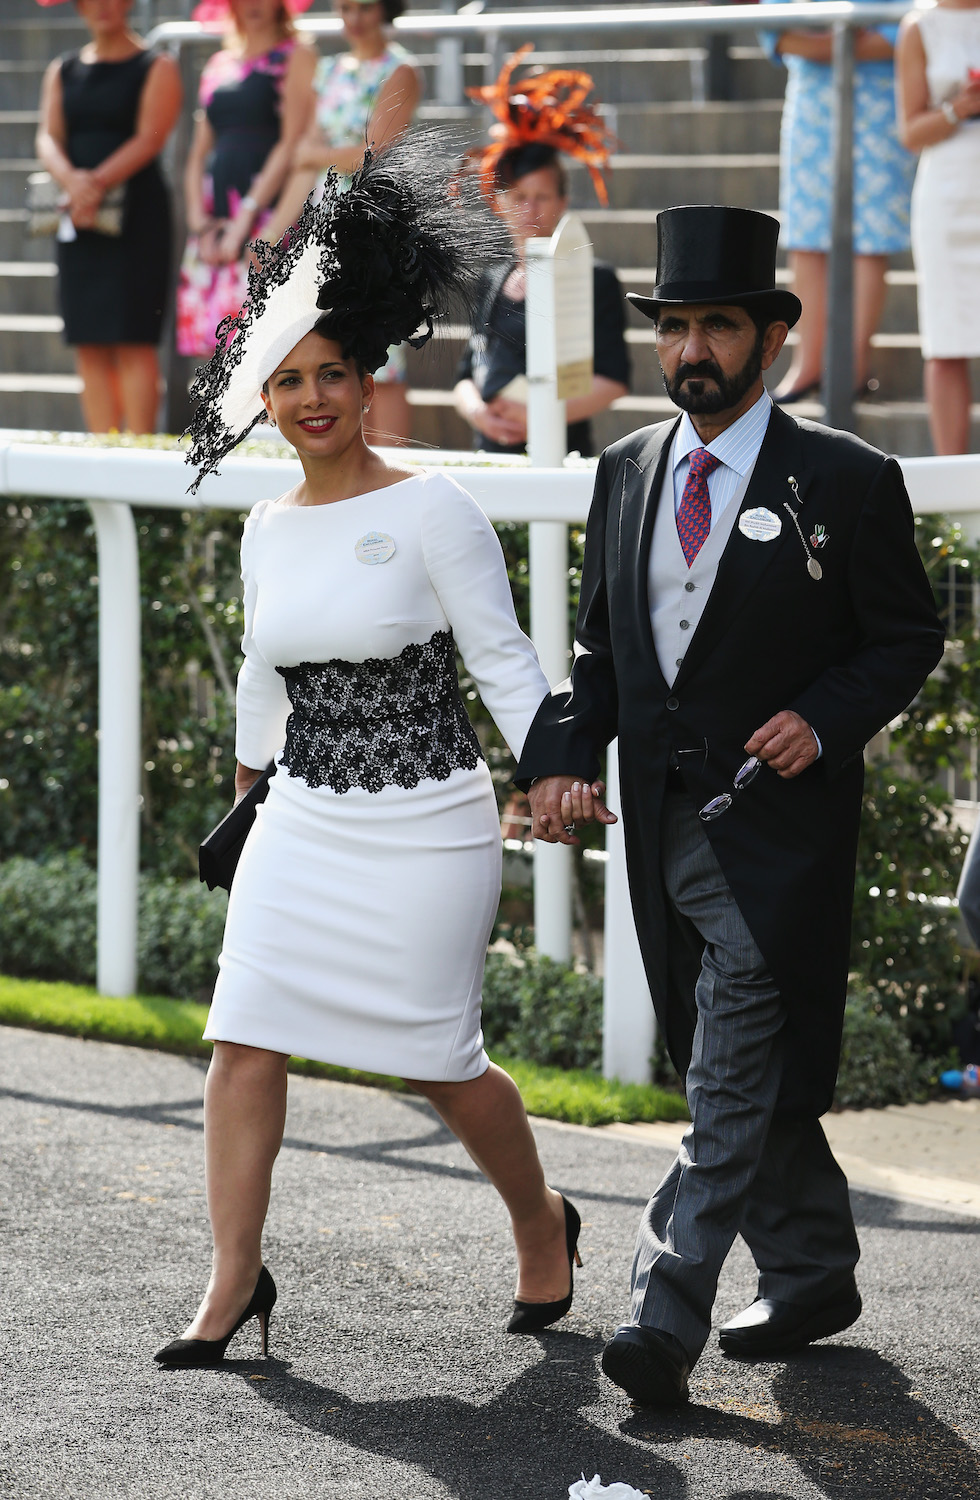 Princess Haya and Sheikh Mohammed are #CoupleGoals at the Royal Ascot 2012.